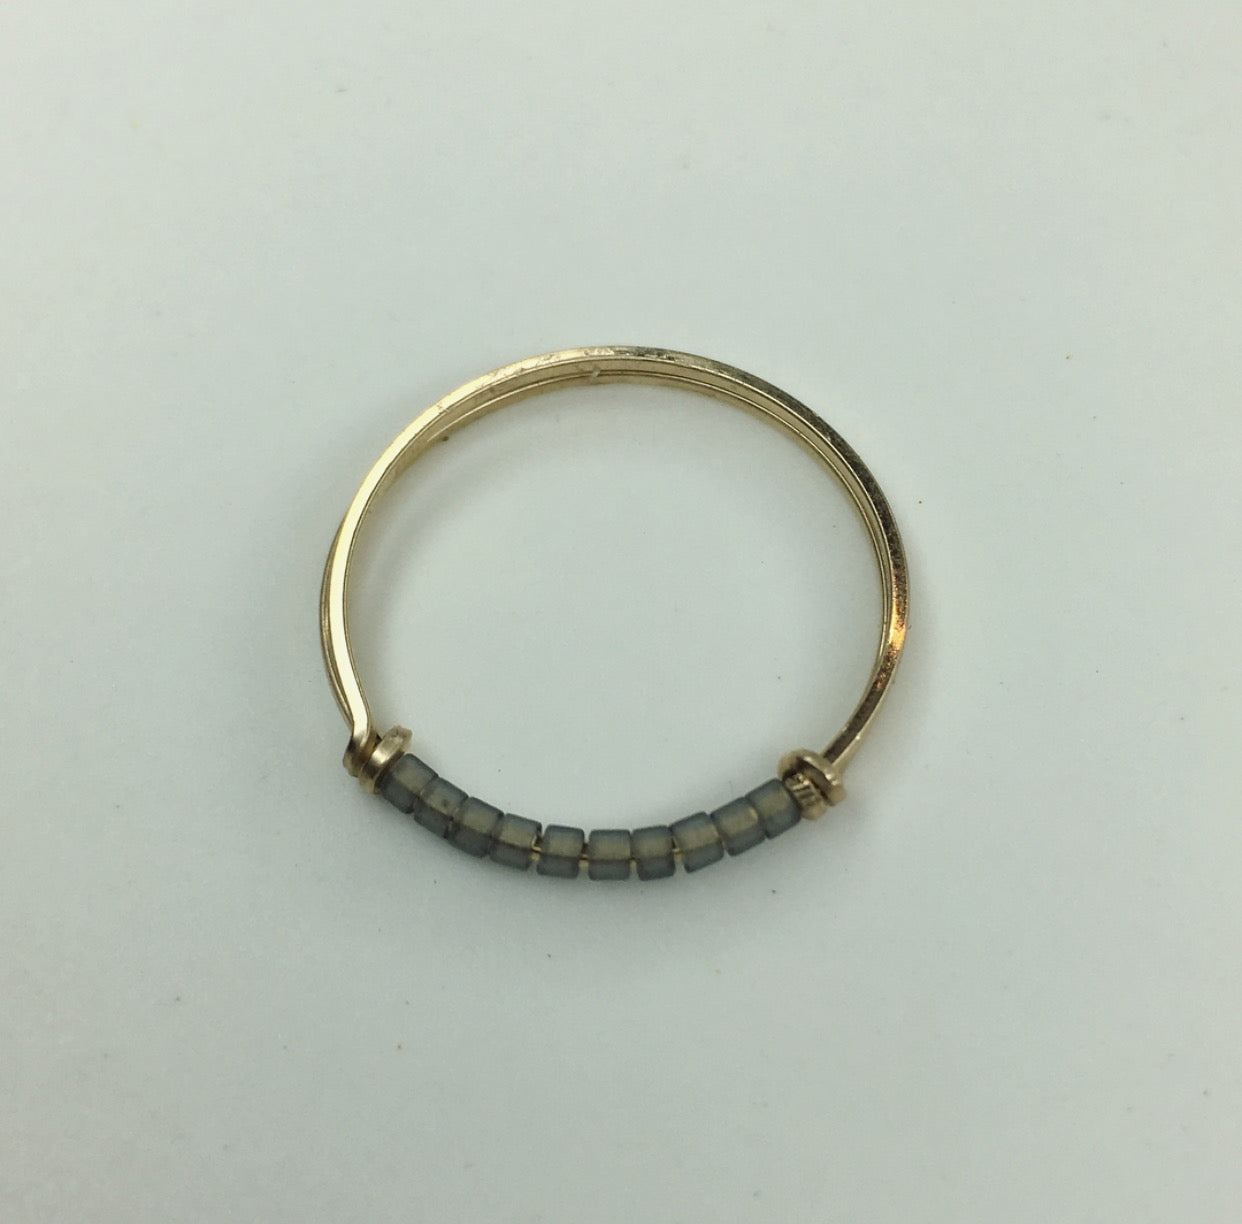 Gold Filled, Stackable ring, Greige tones, locally made, Sarah Briggs